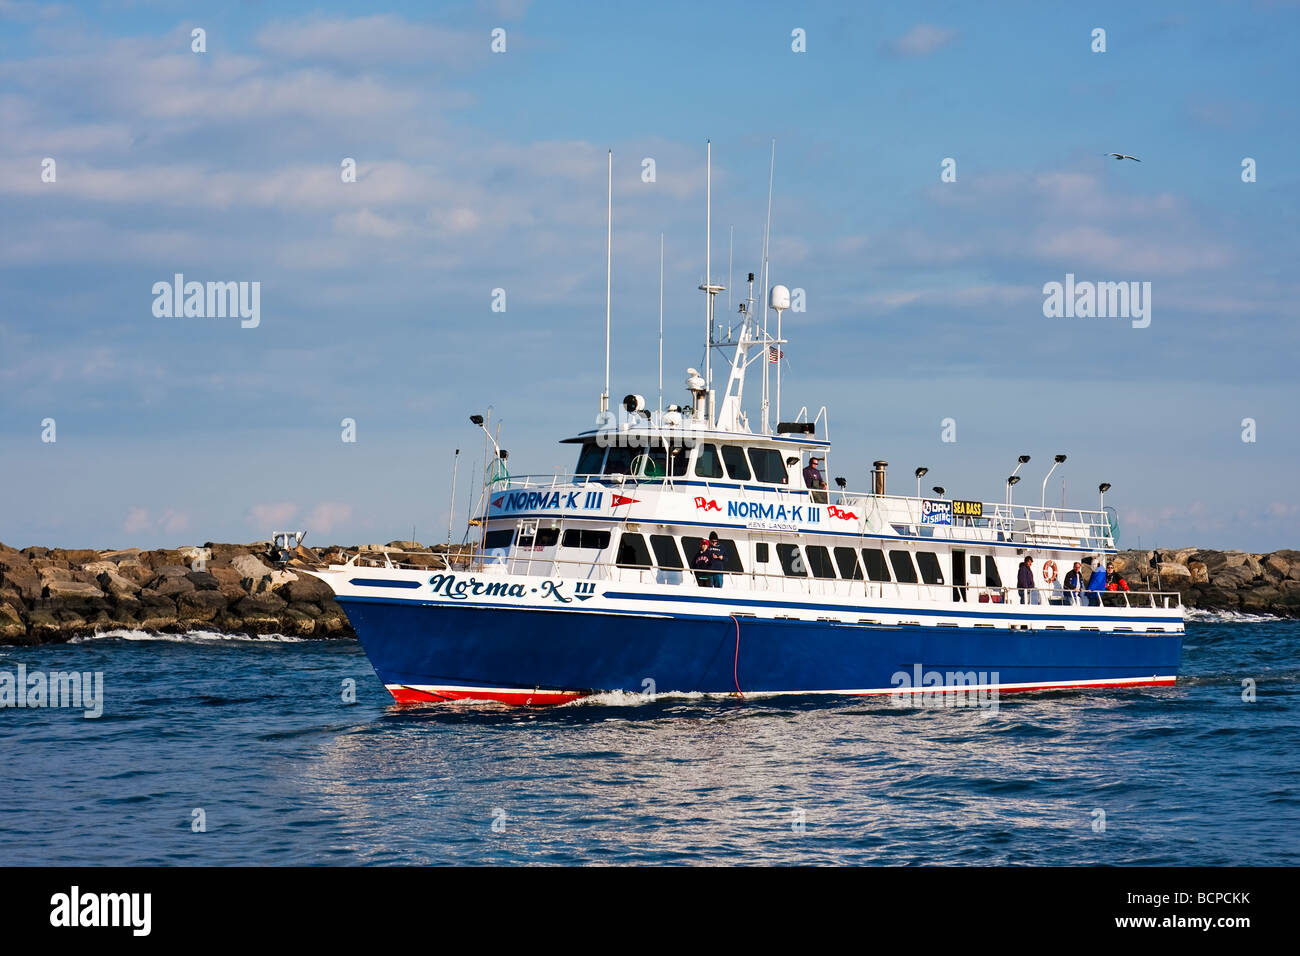 Inlet jersey stock photos inlet jersey stock images alamy for Lbi fishing charters